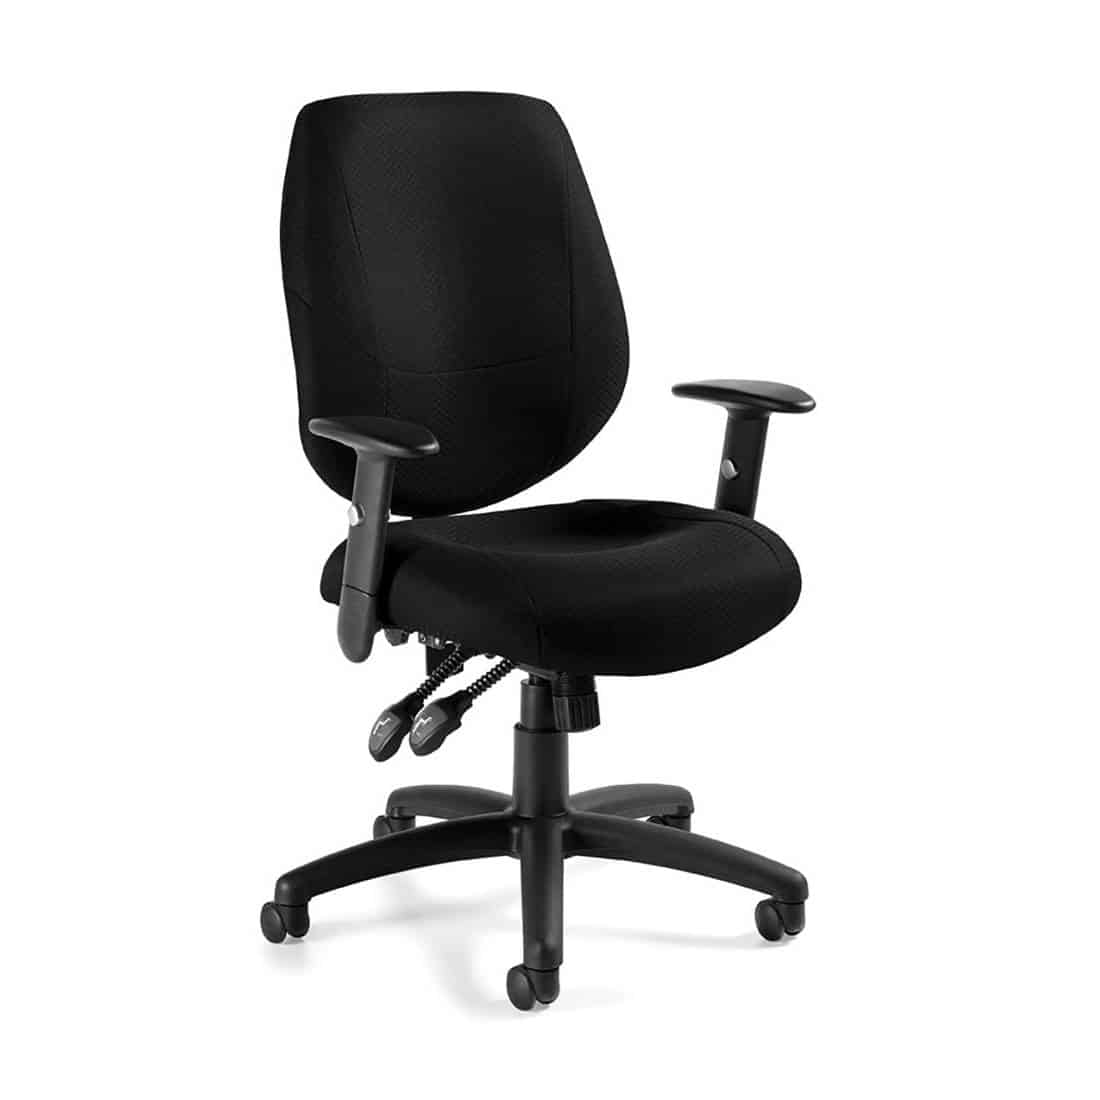 9 to 5 Logic Mid Back Desk Chair with Multi Function Seat and Forward Seat Pitch